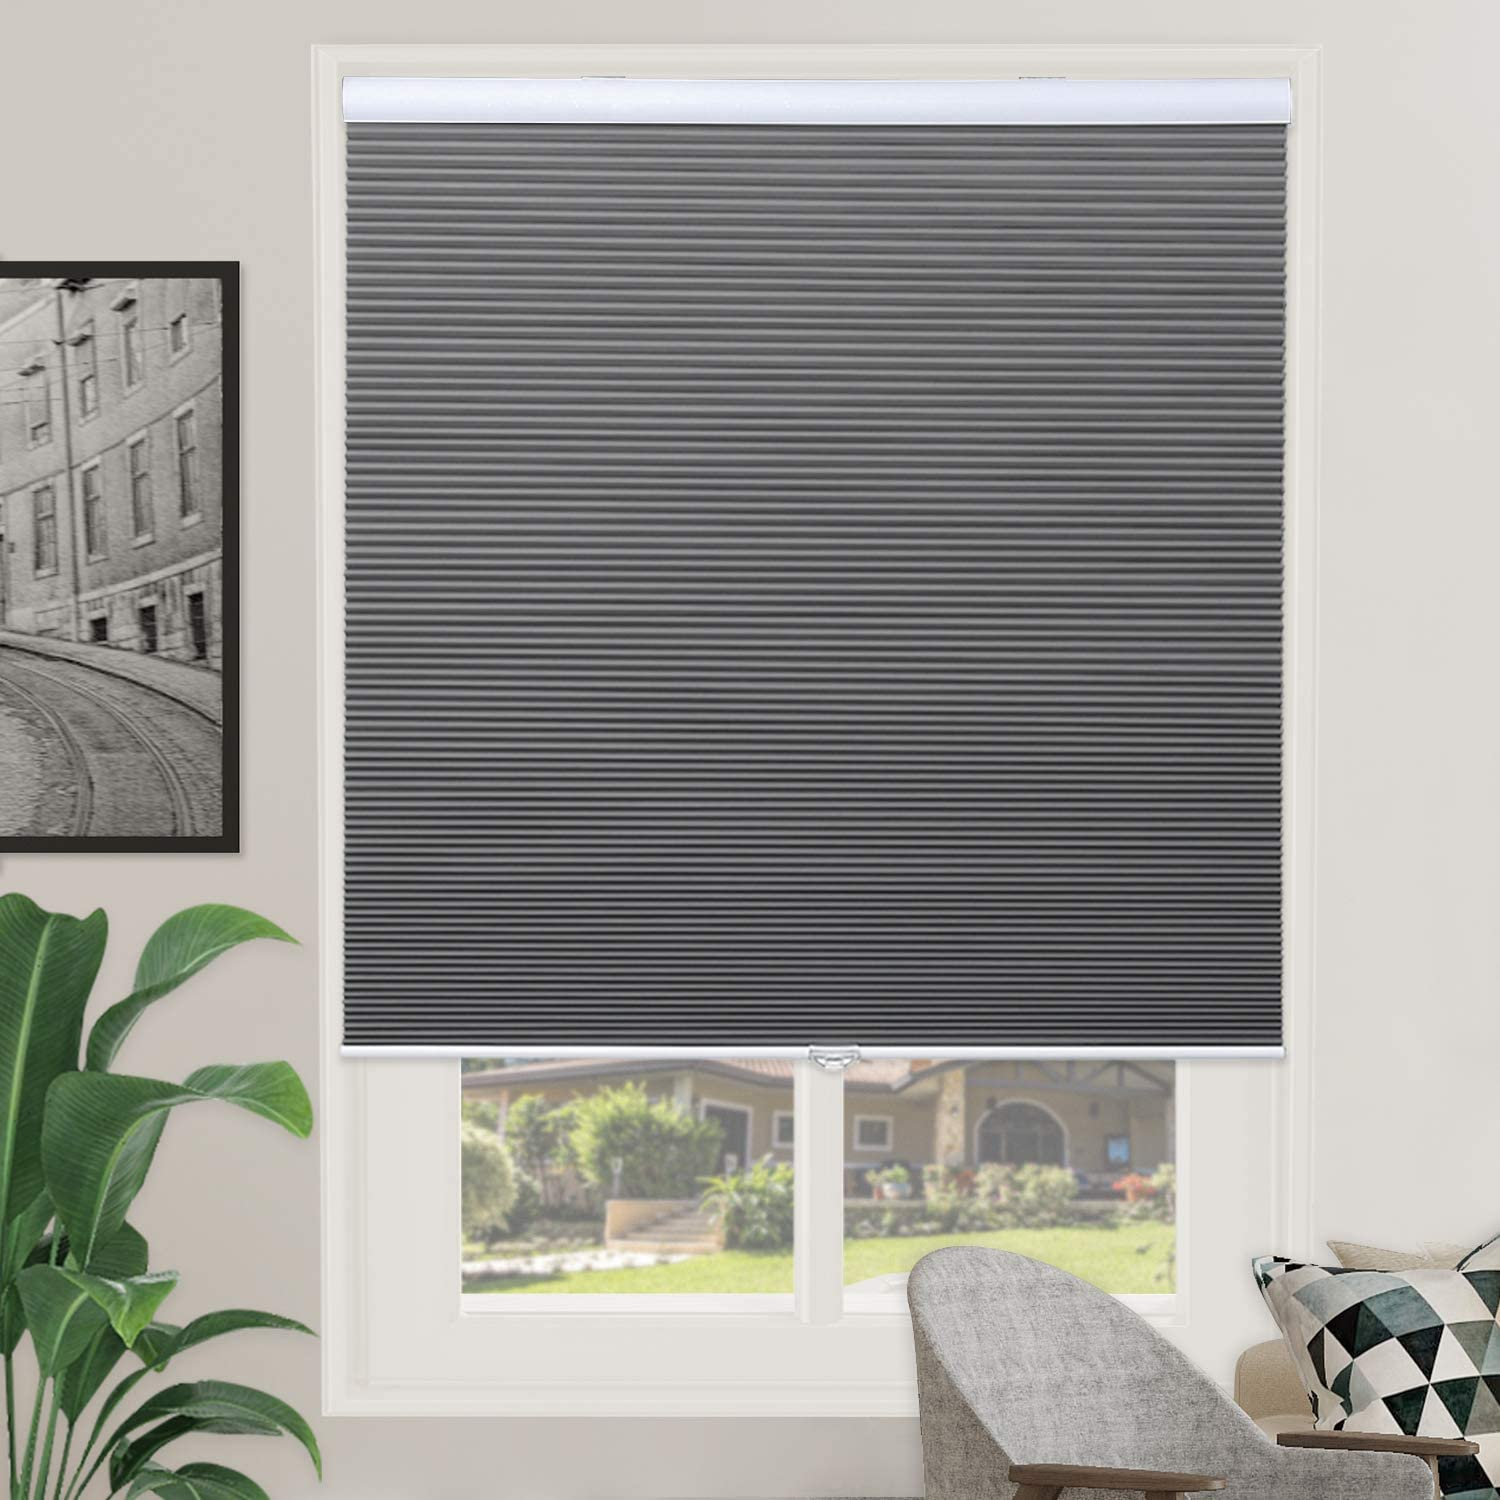 Blackout Cellular Shades Single Cell Cordless Room Darkening Shade for Windows Bedroom, Thermal and Easy to Pull Down & Up, Gray White, Size: 35